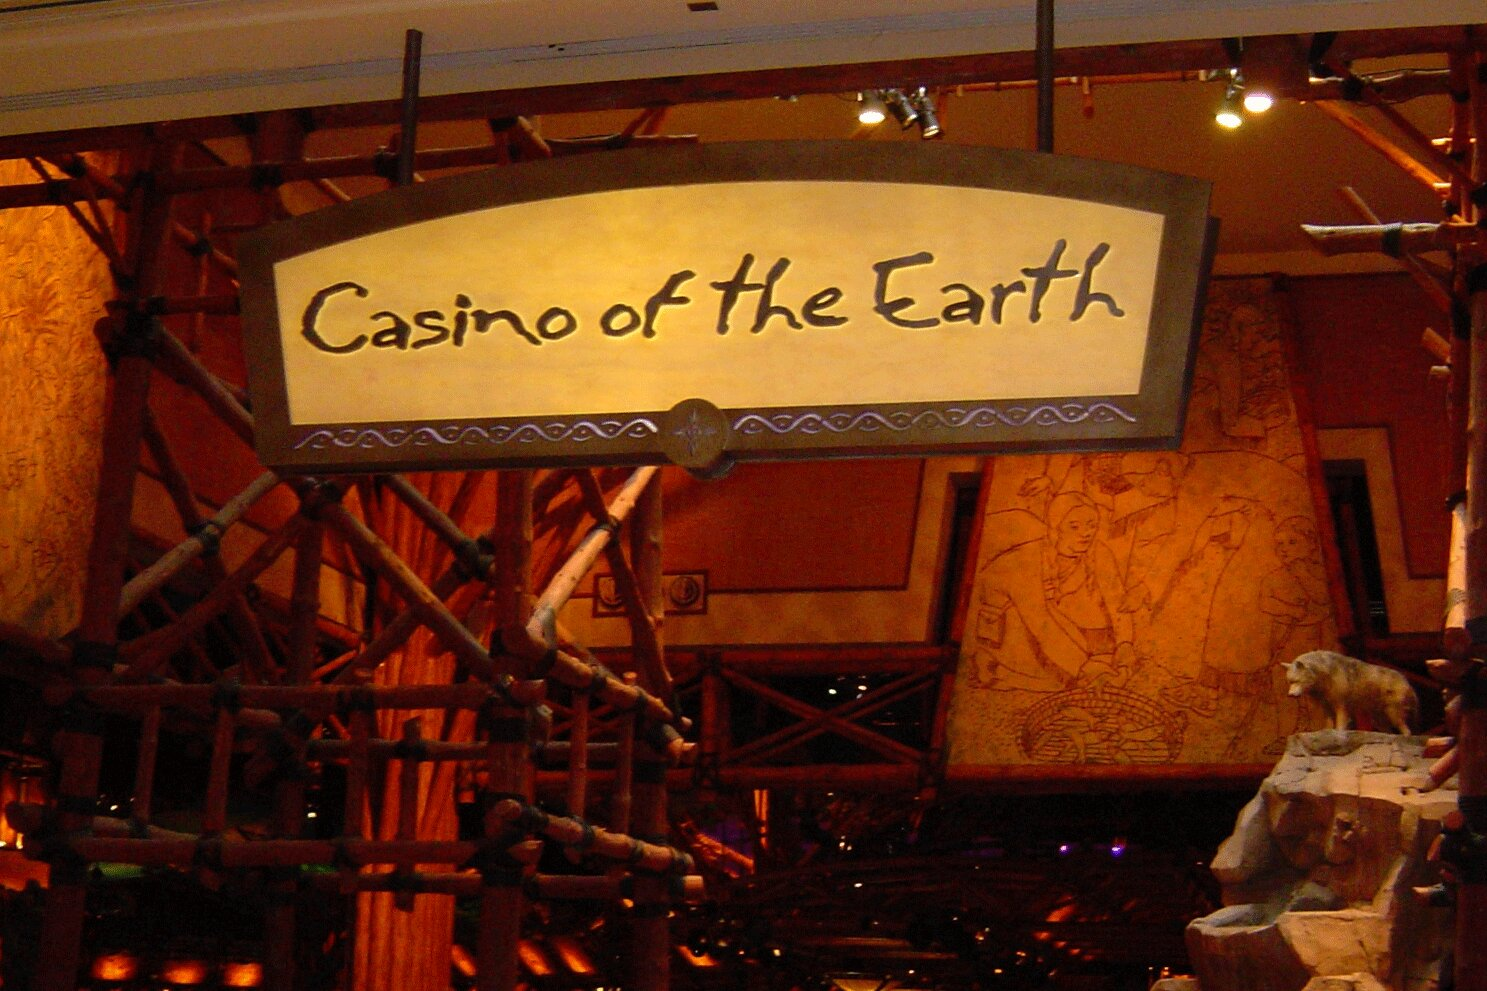 CASINO OF THE EARTH